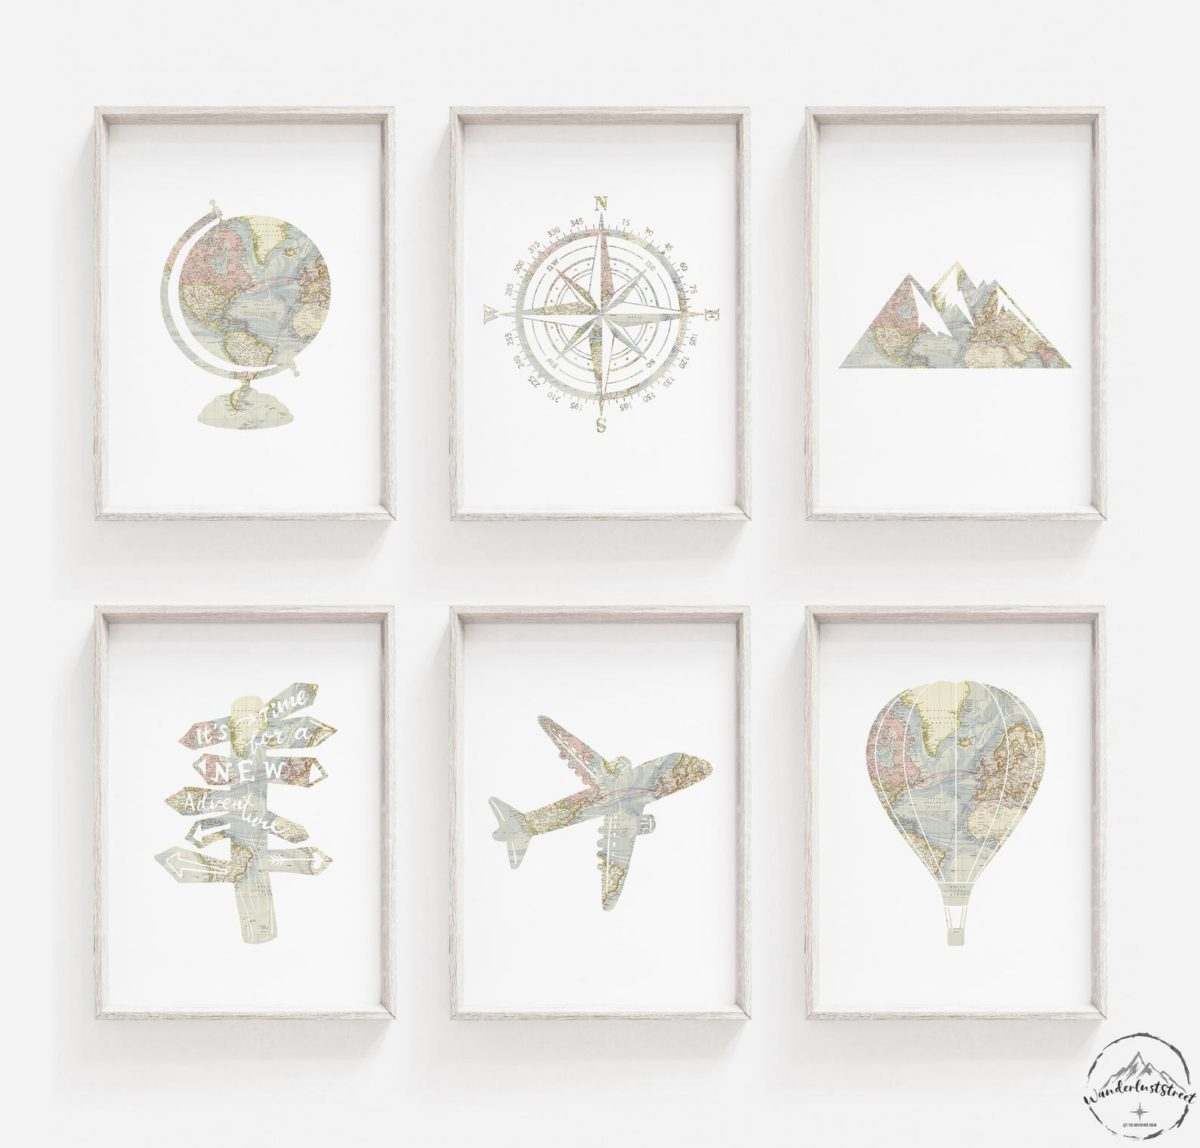 travel images for your wall